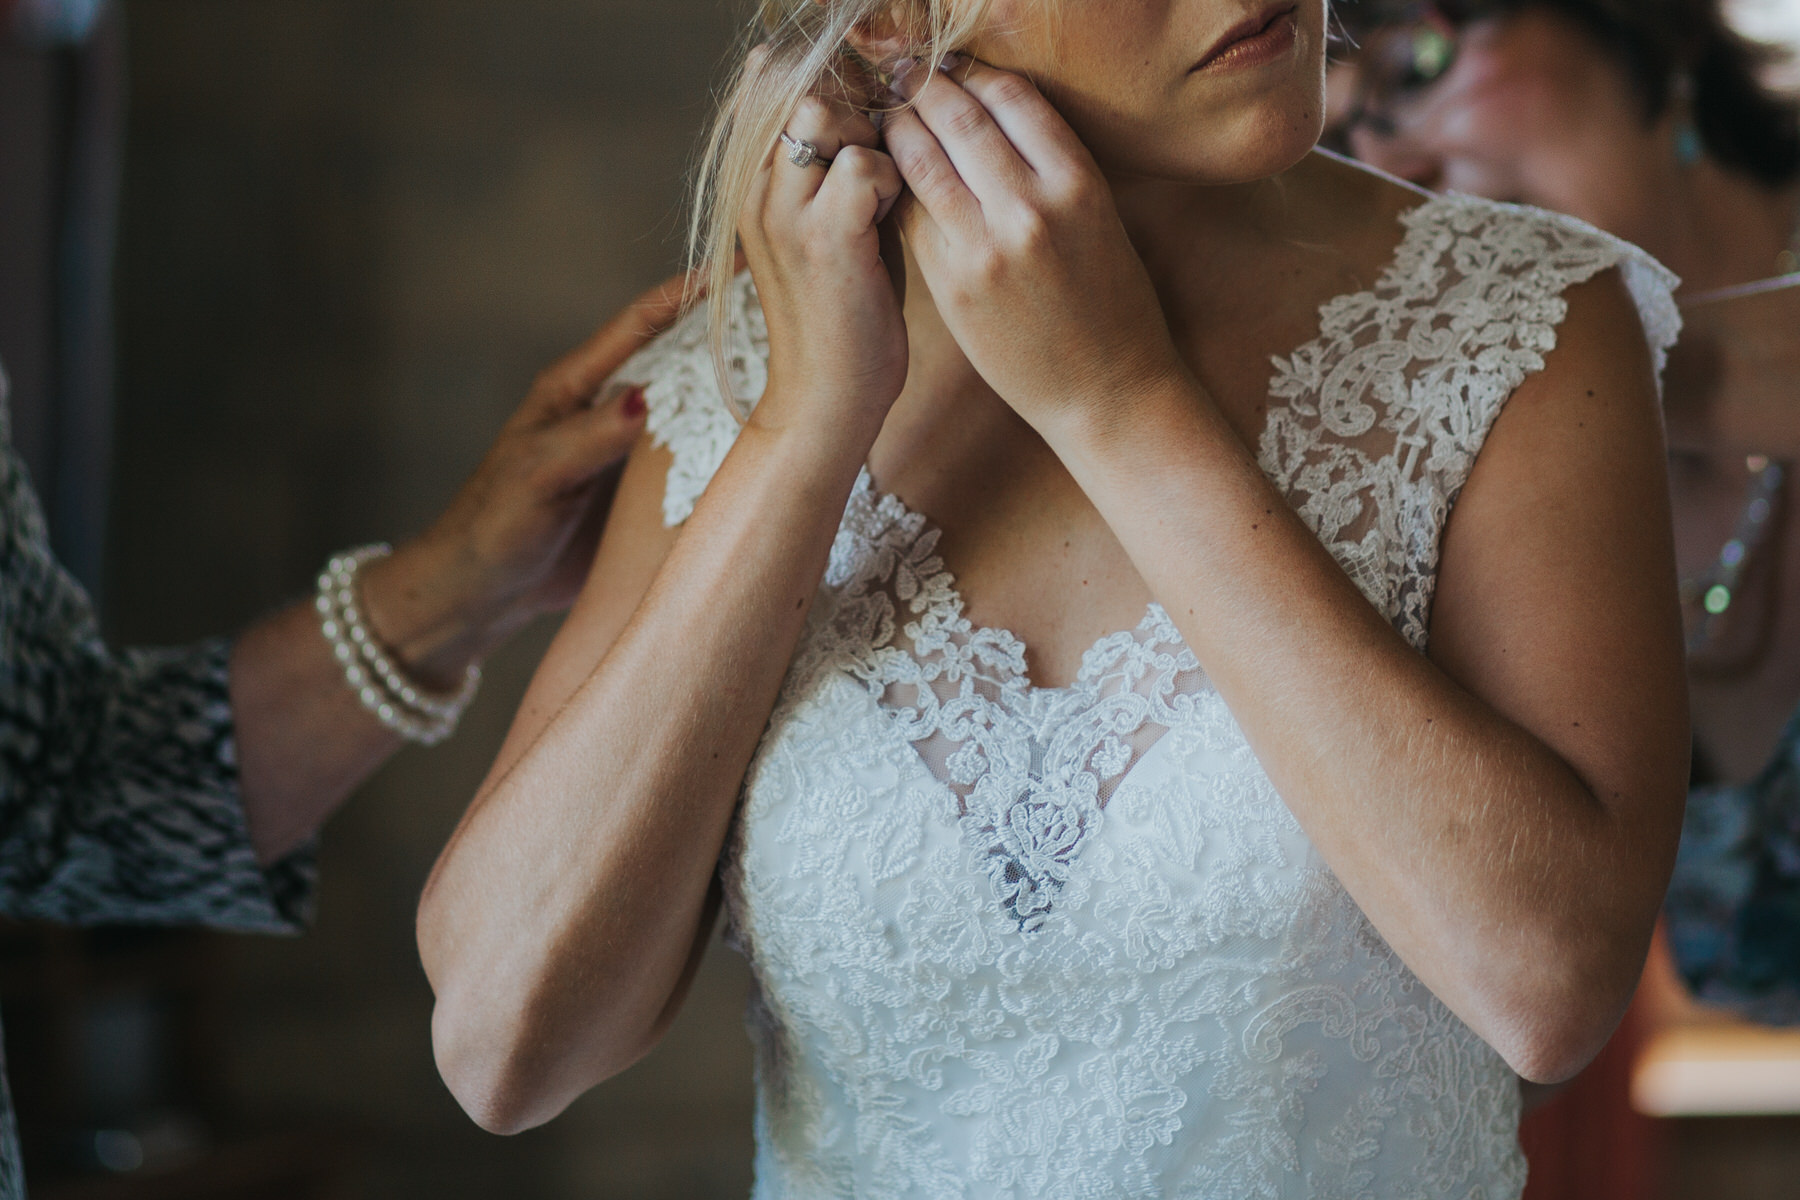 74 bride clipping earing Yolande De Vries Photography.jpg